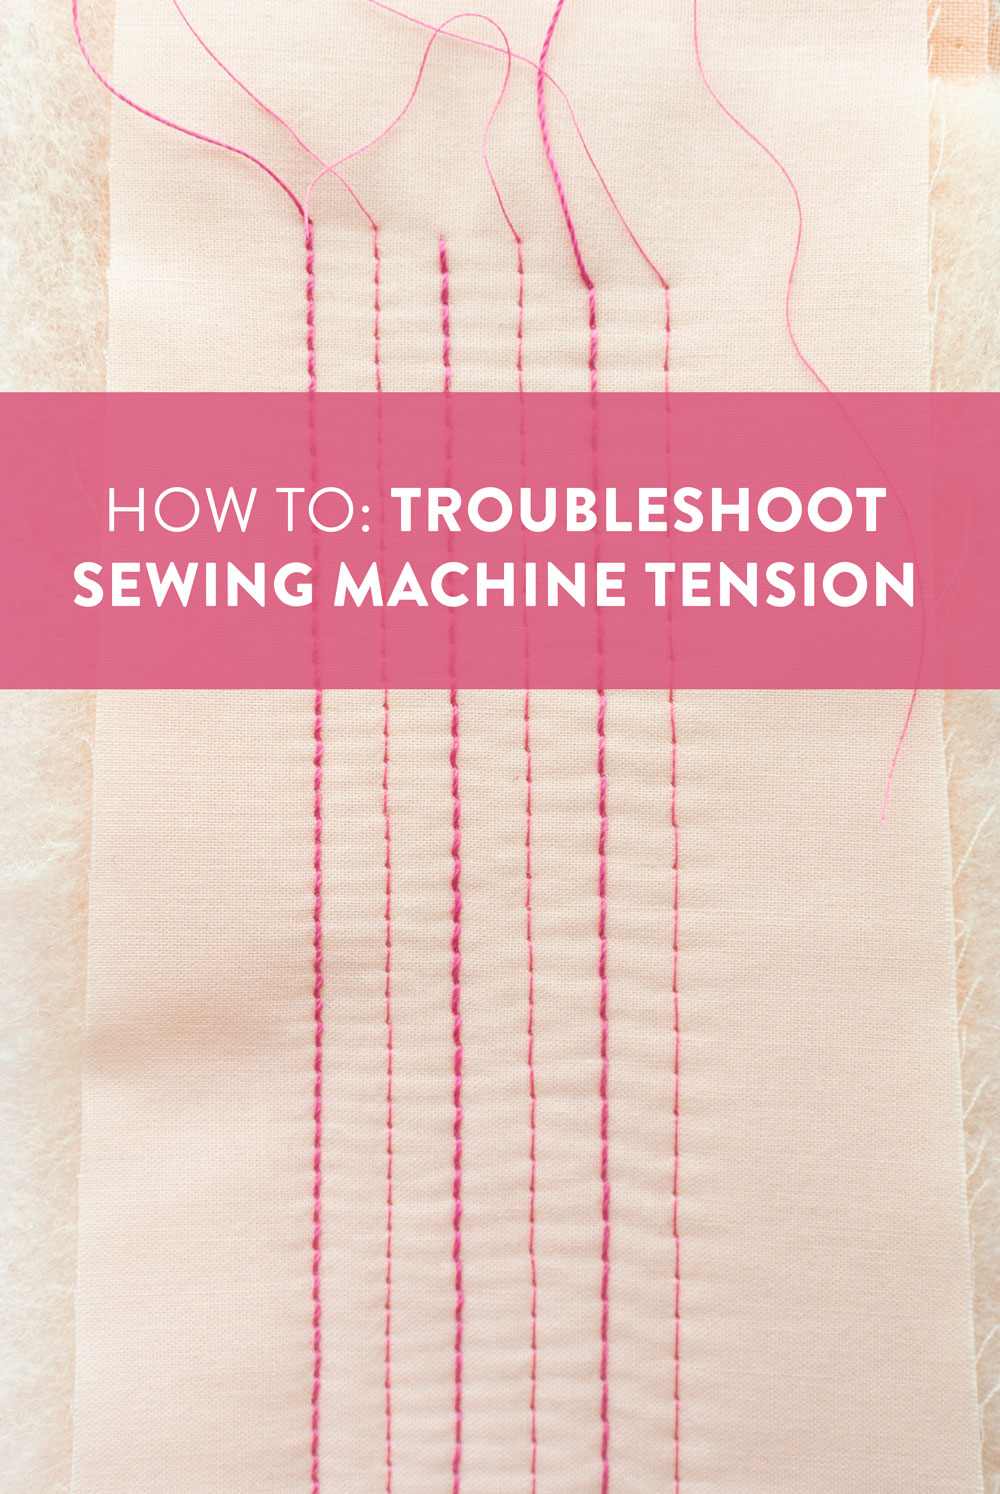 How To Fix Bobbin Tension : bobbin, tension, Troubleshoot, Sewing, Machine, Tension, Quilts